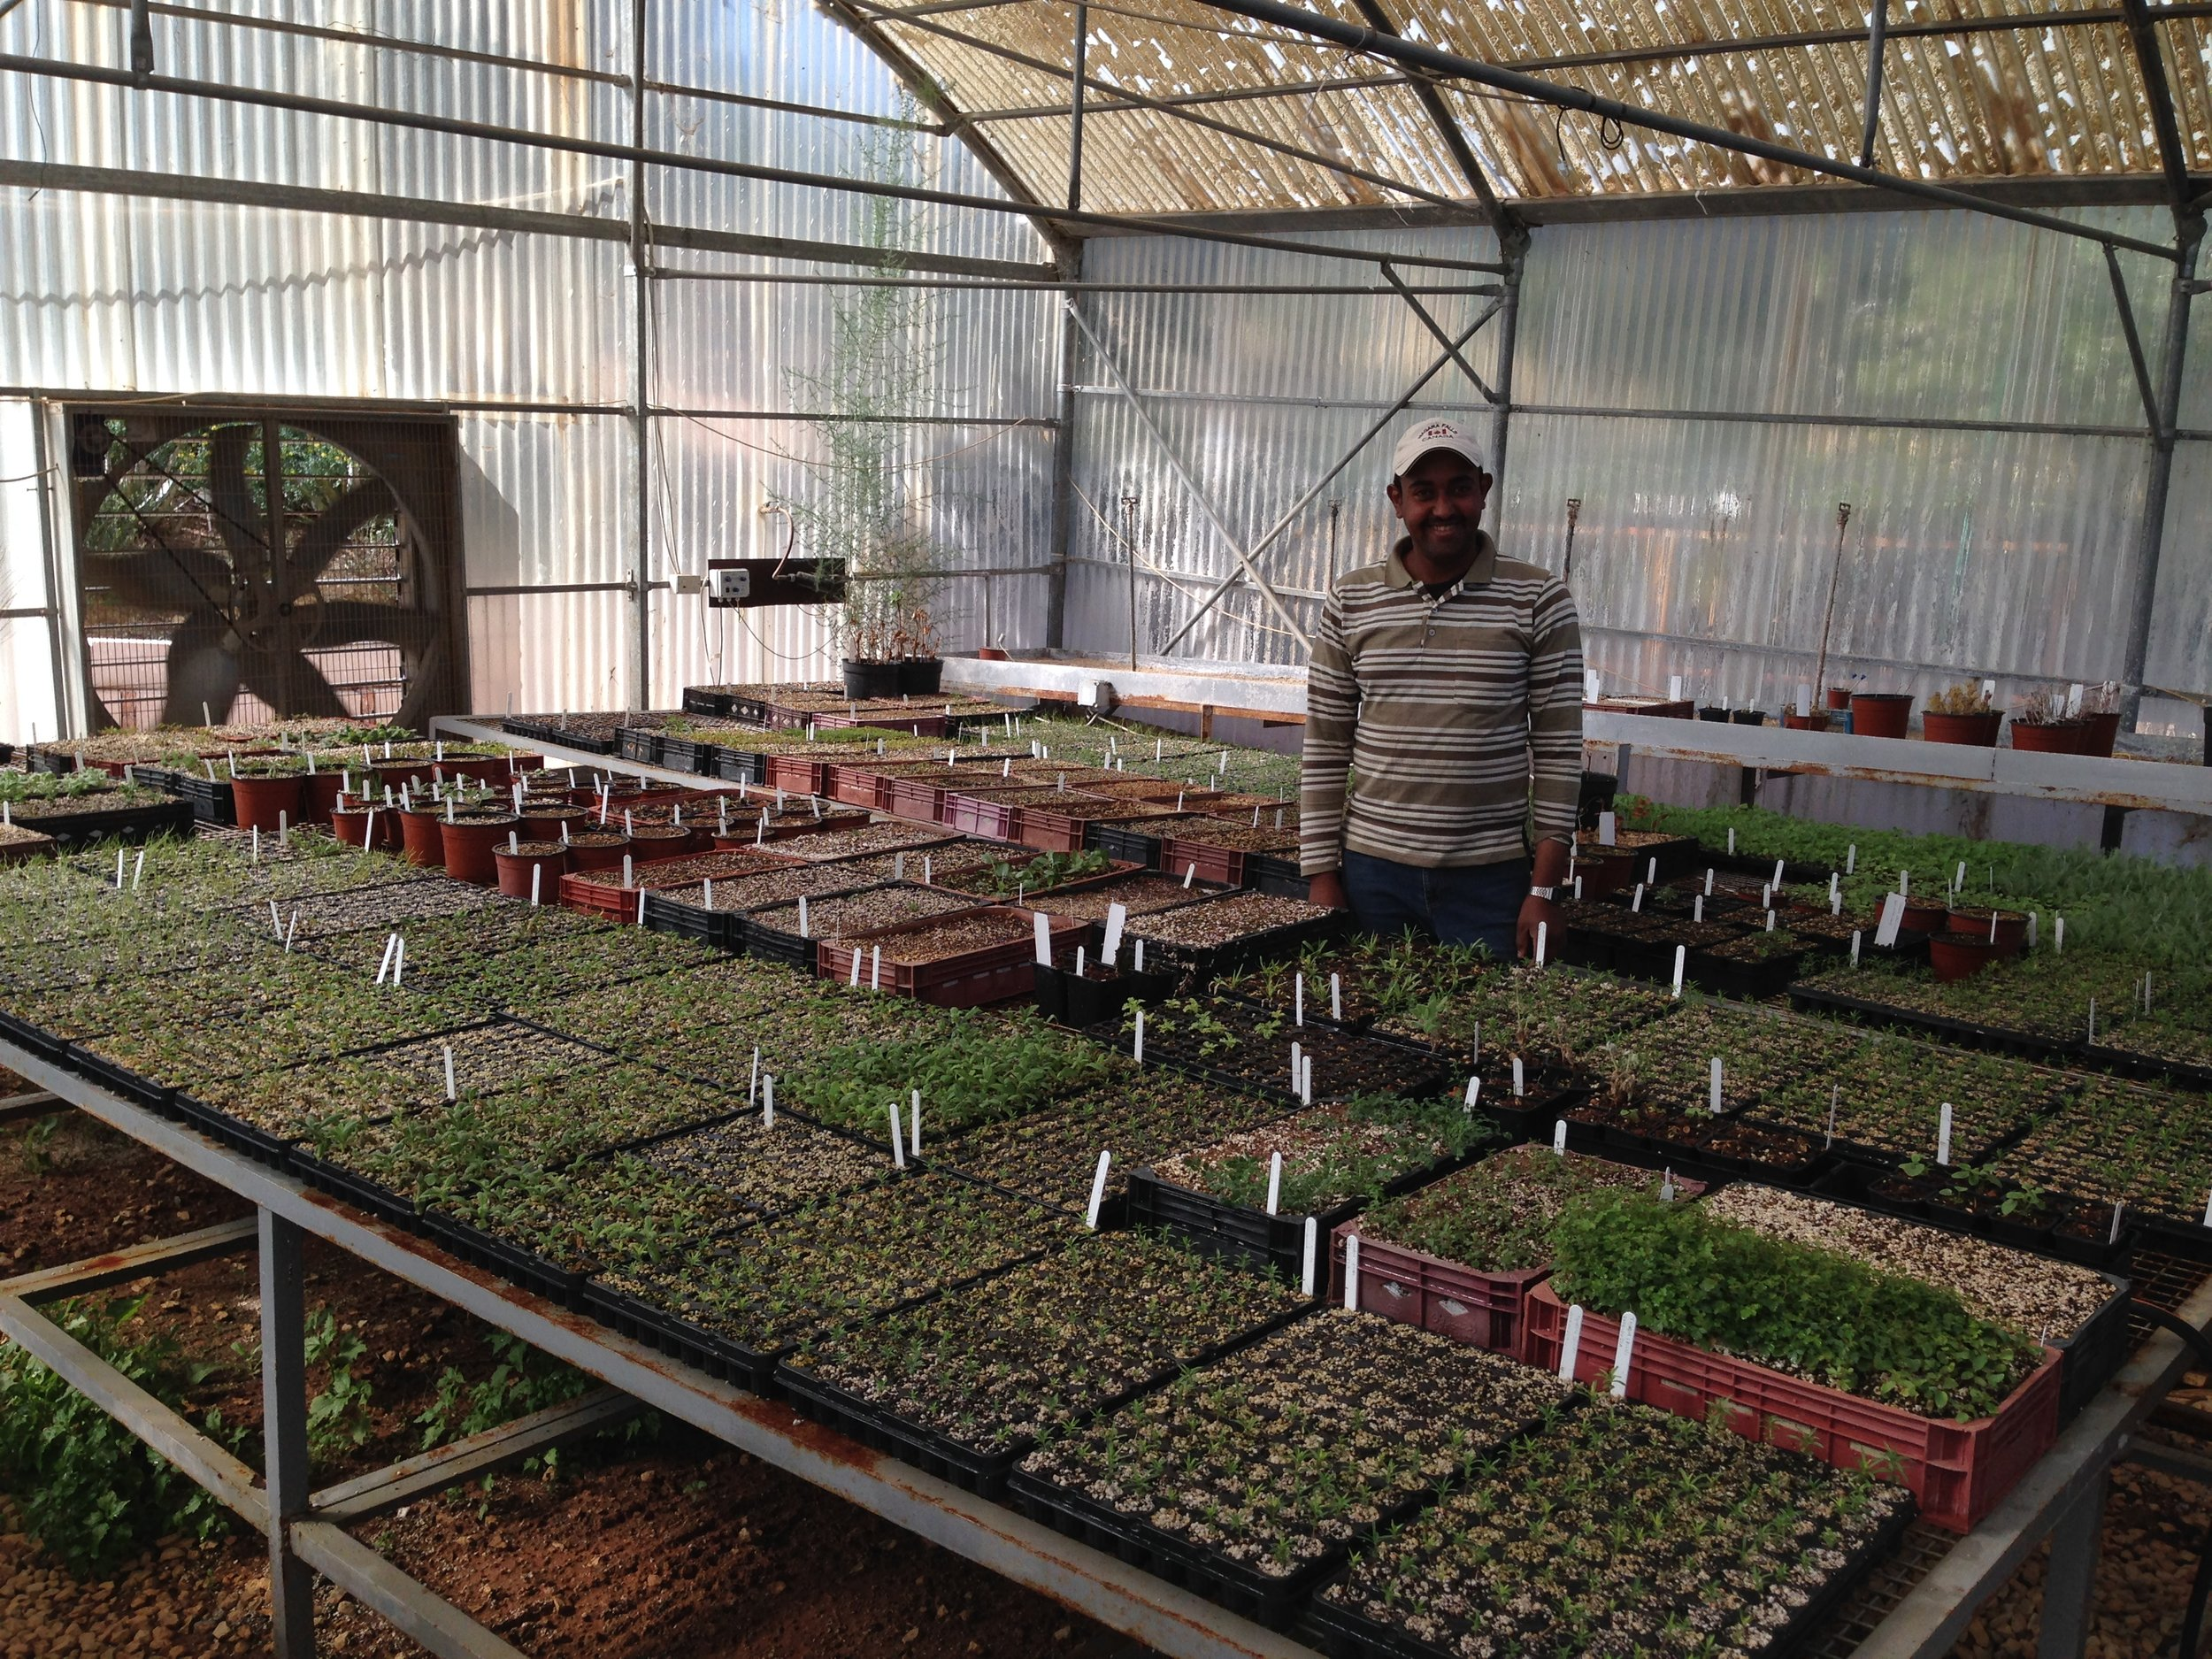 nursery-assistant-ibrahim-odeh-in-the-greenhouse-amongst-his-hard-work.jpg